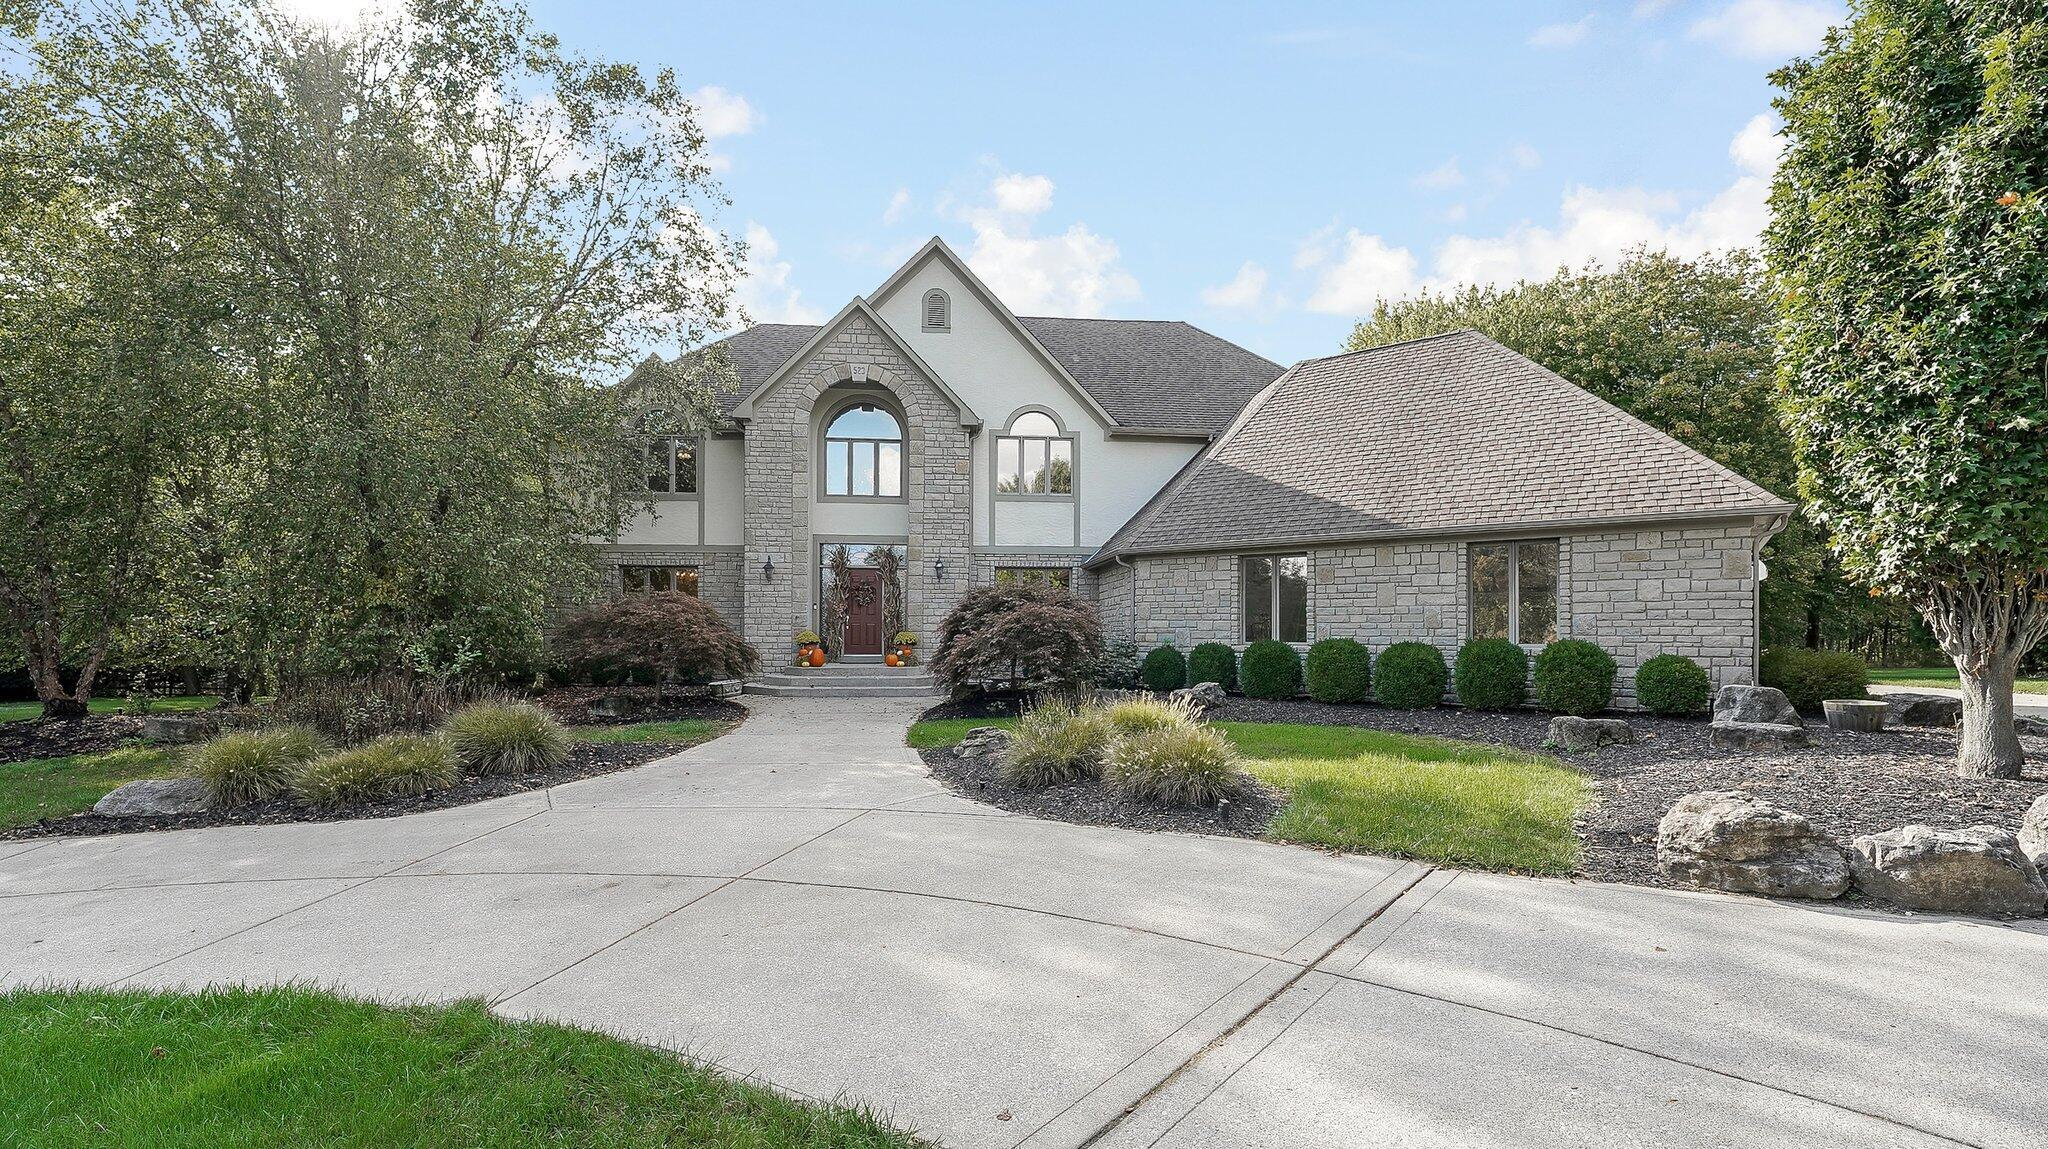 Photo of 523 Cardinal Hill Lane, Powell, OH 43065